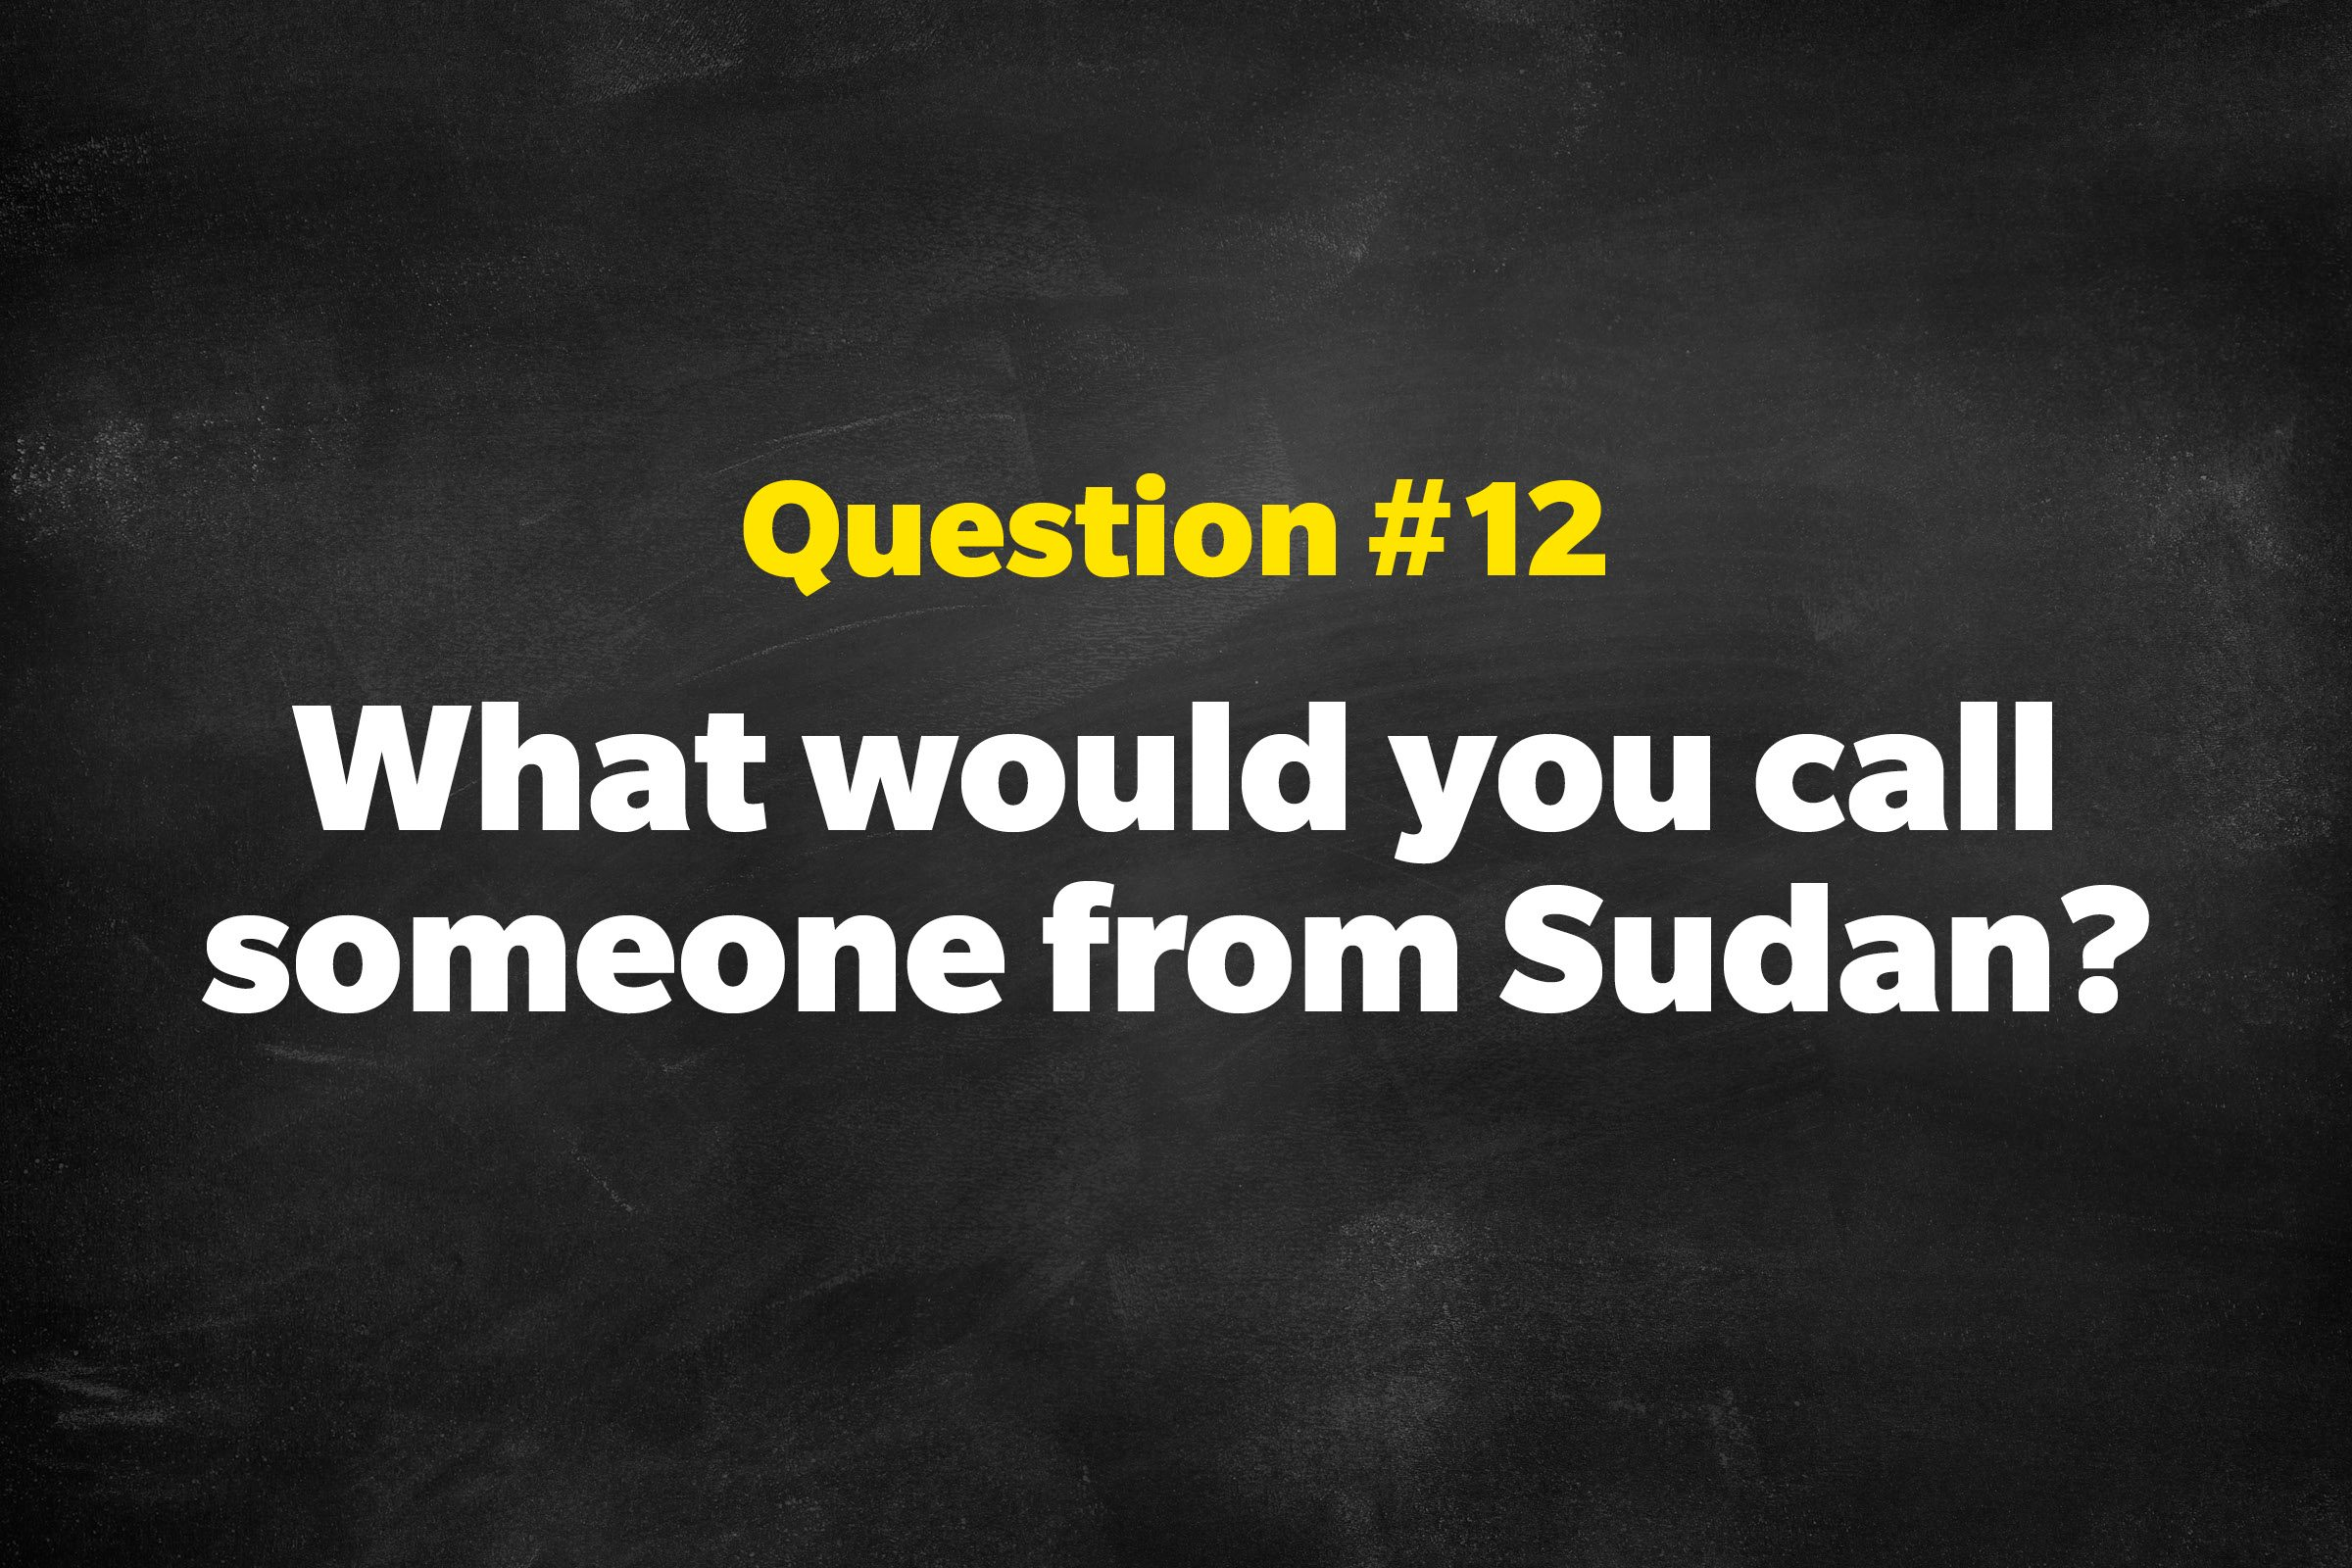 Question #12: What would you call someone from Sudan?